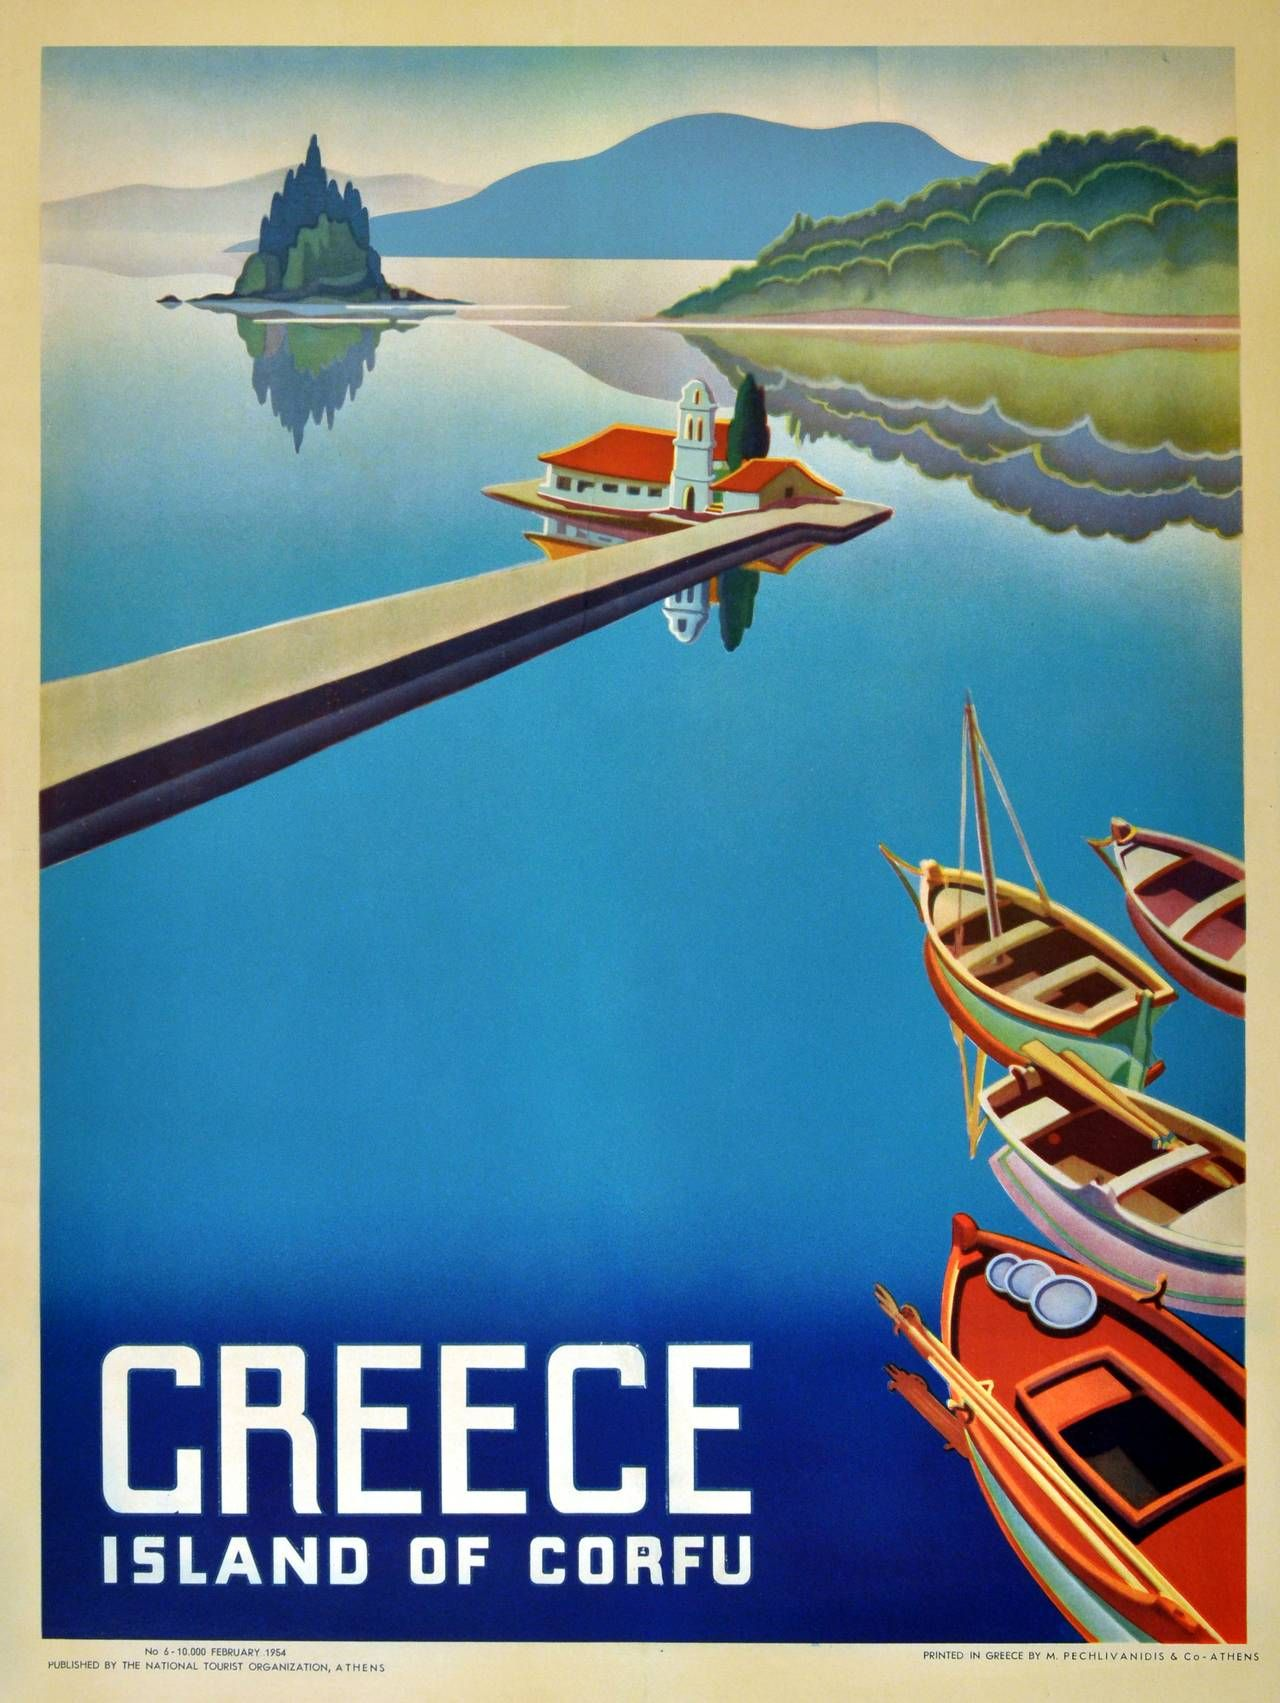 Original Vintage 1954 Travel Poster Advertising, the Island